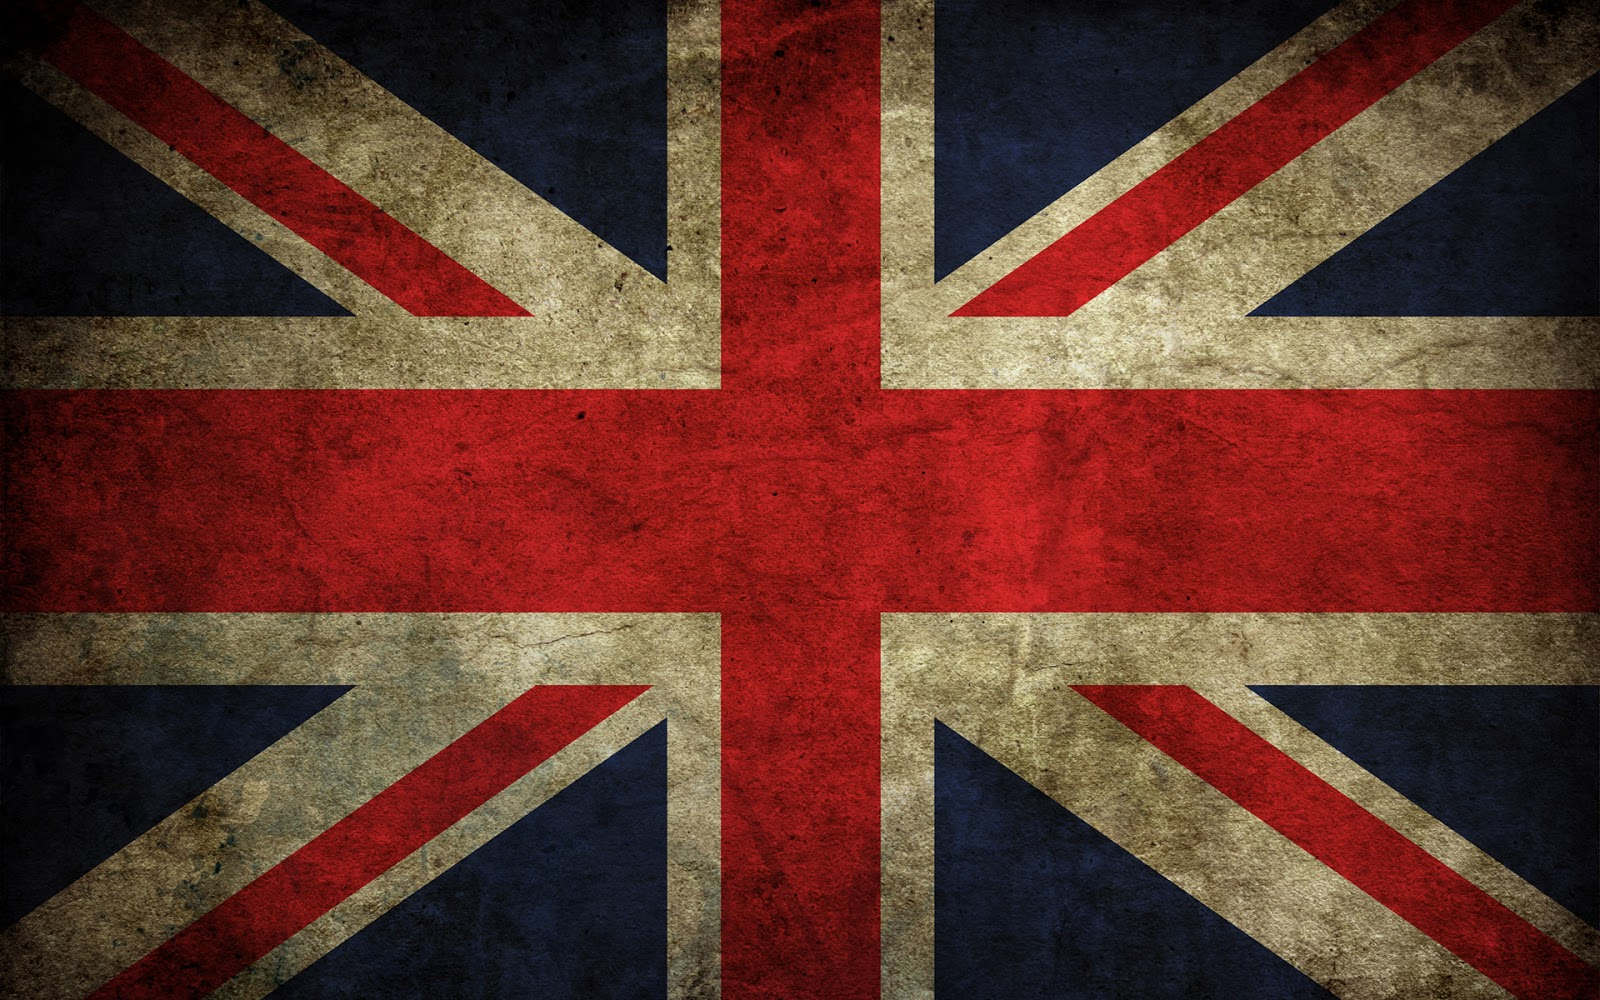 wallpapers backgrounds british - photo #3